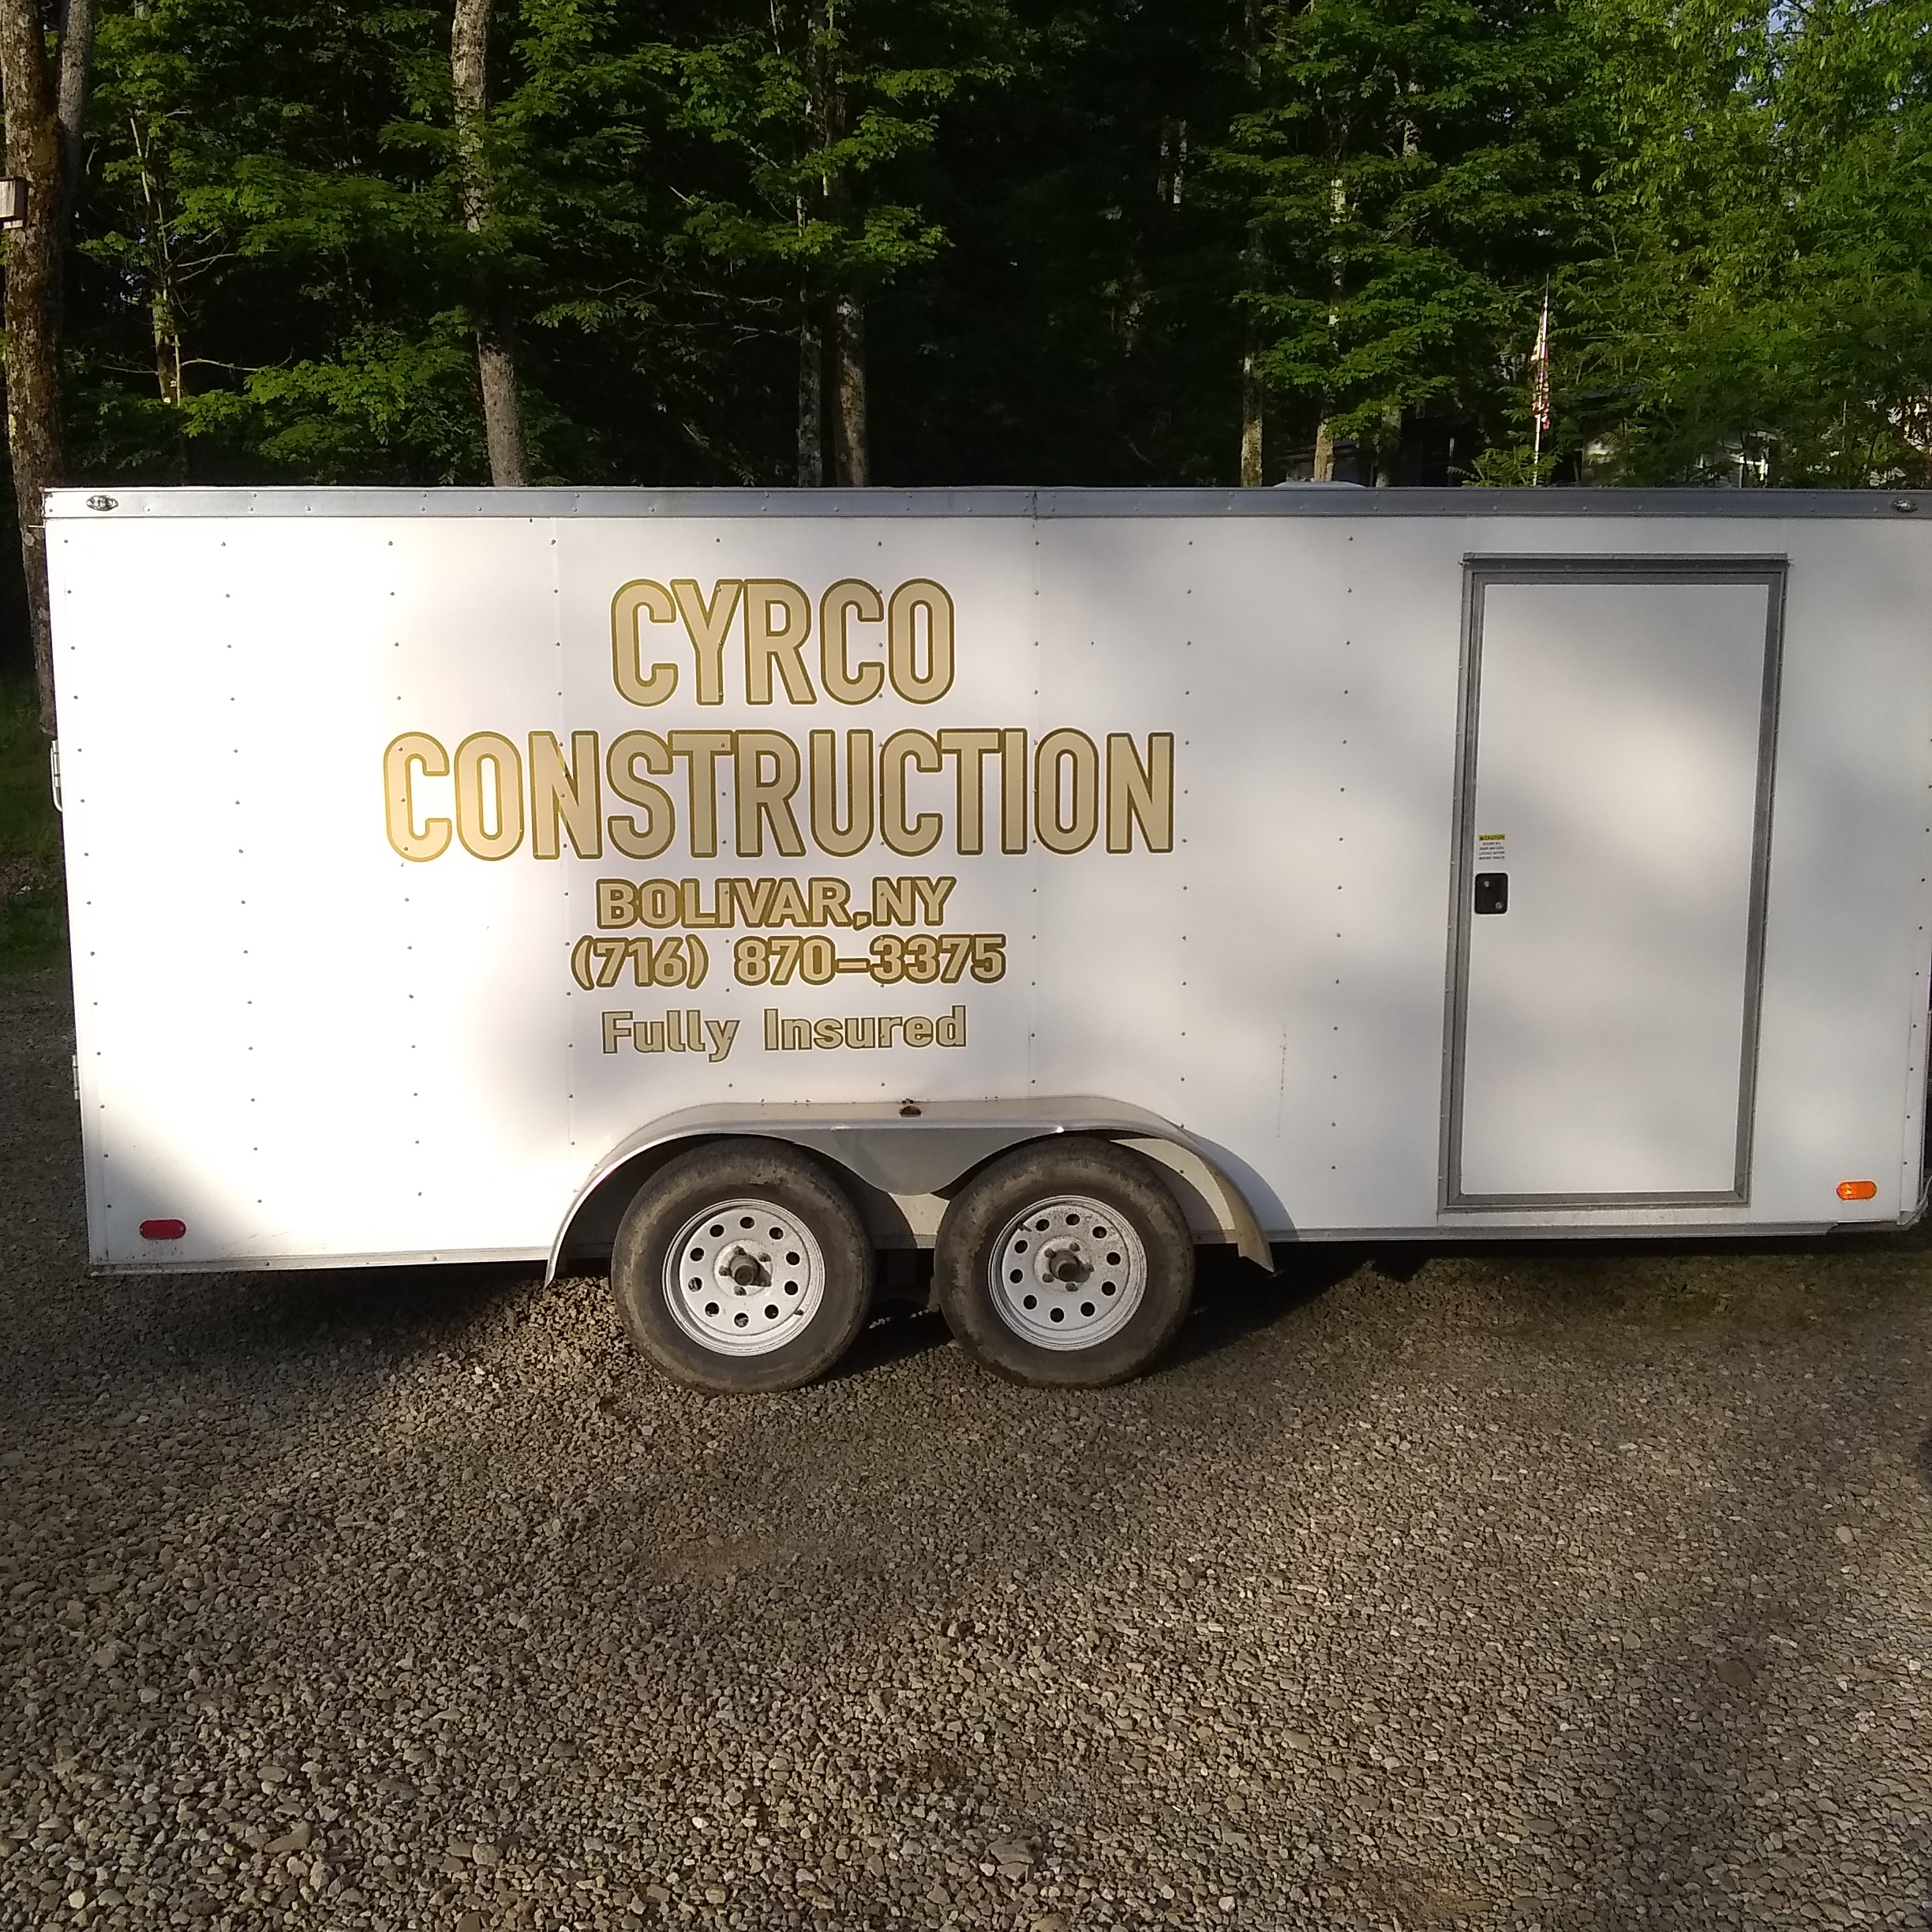 Cyrco construction